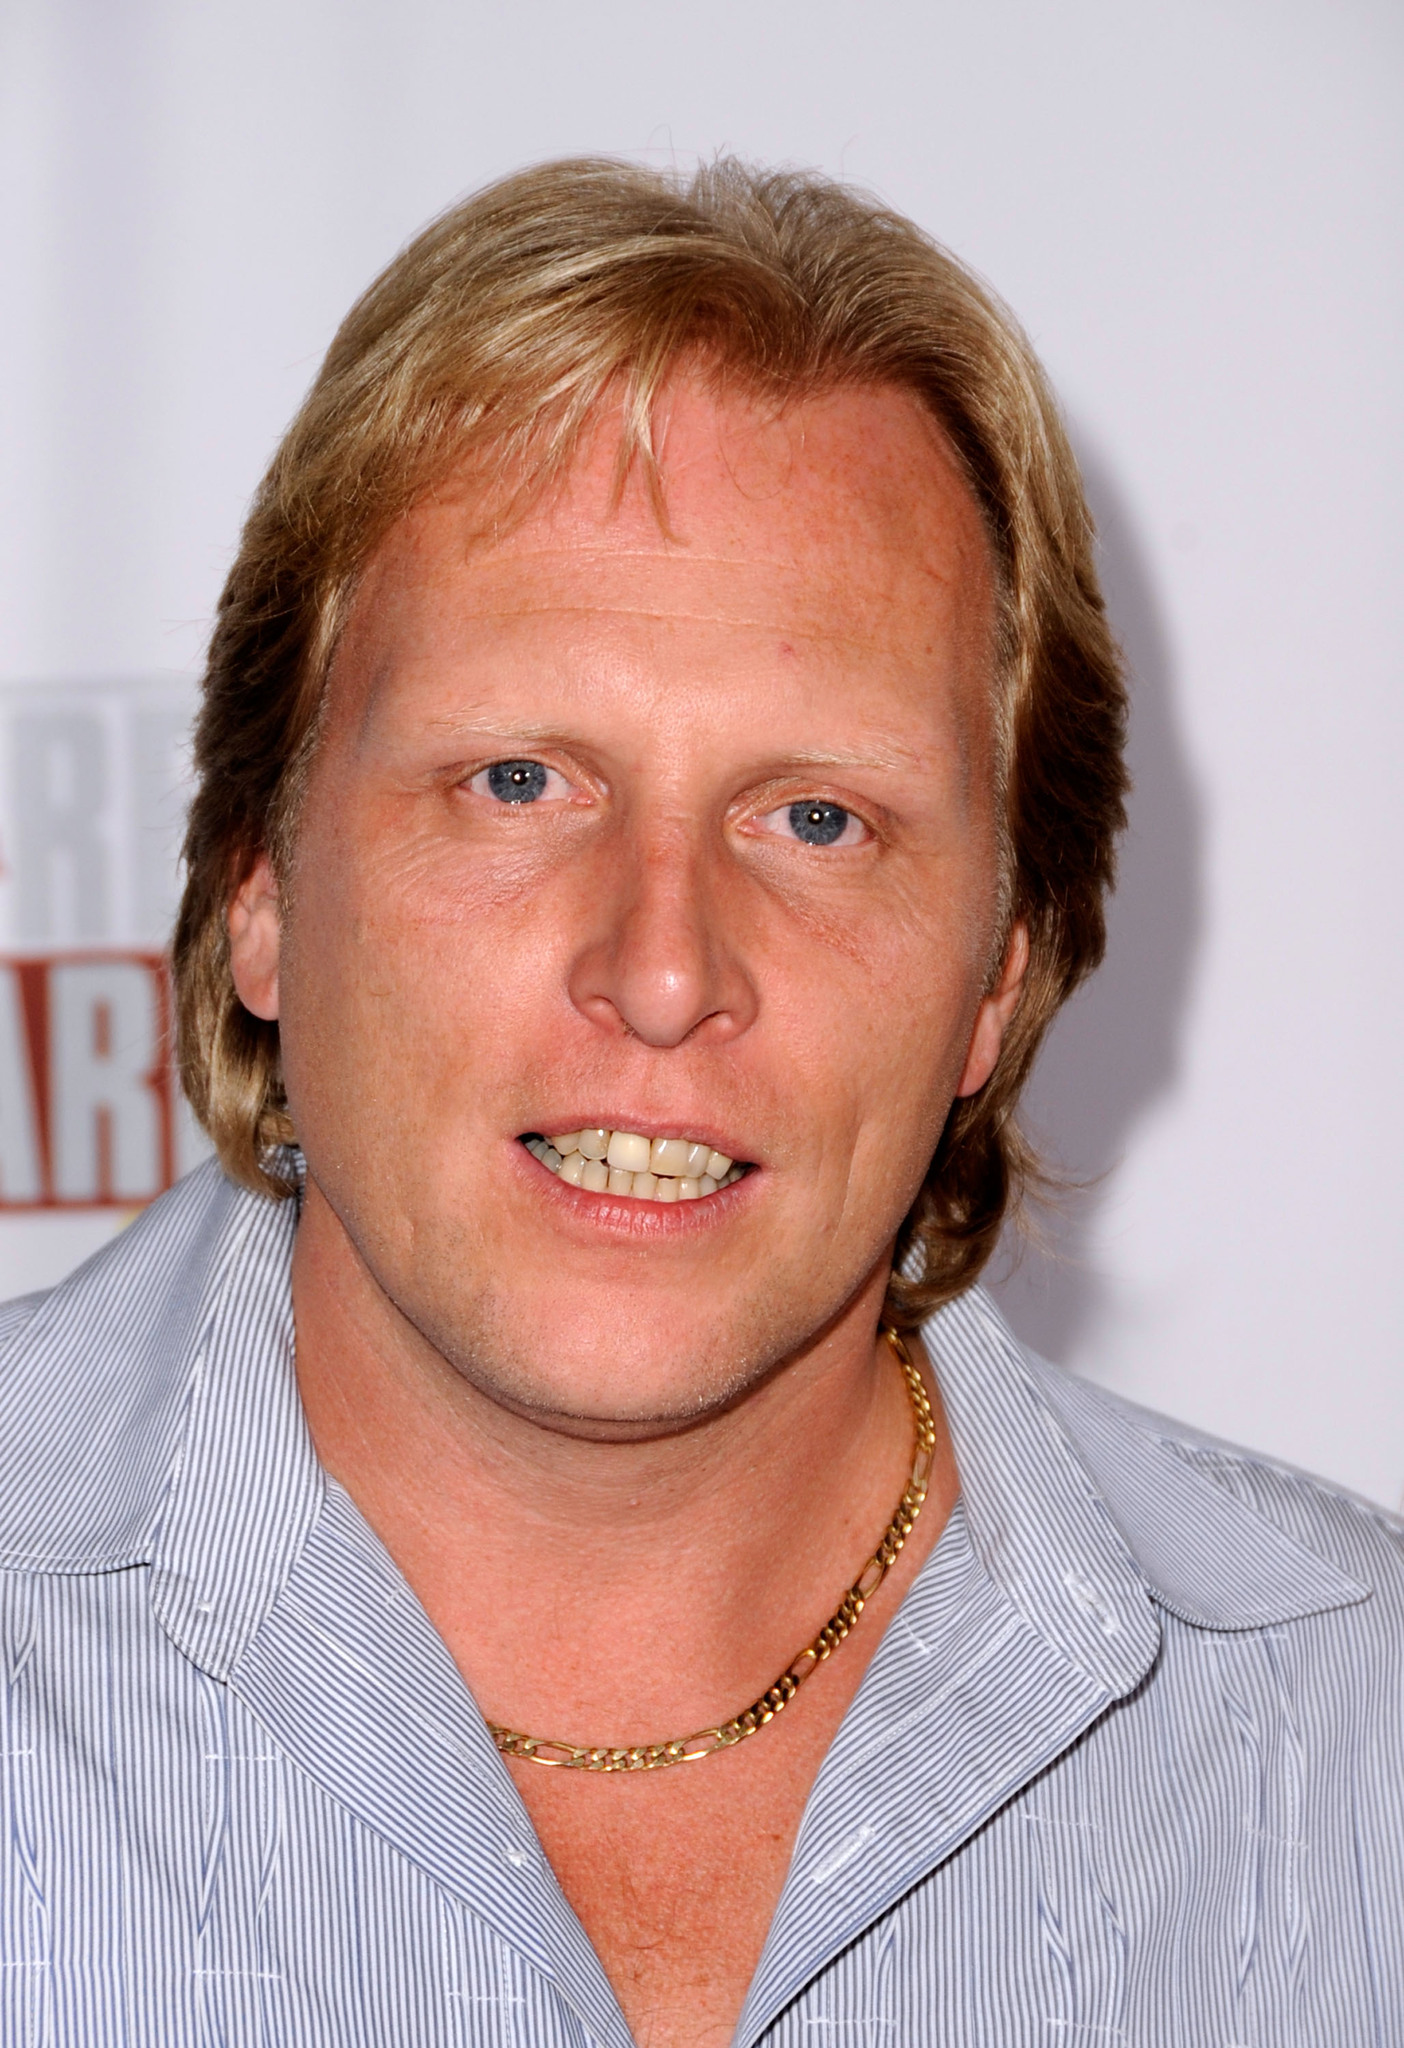 The 54-year old son of father (?) and mother(?) Sig Hansen in 2020 photo. Sig Hansen earned a million dollar salary - leaving the net worth at million in 2020